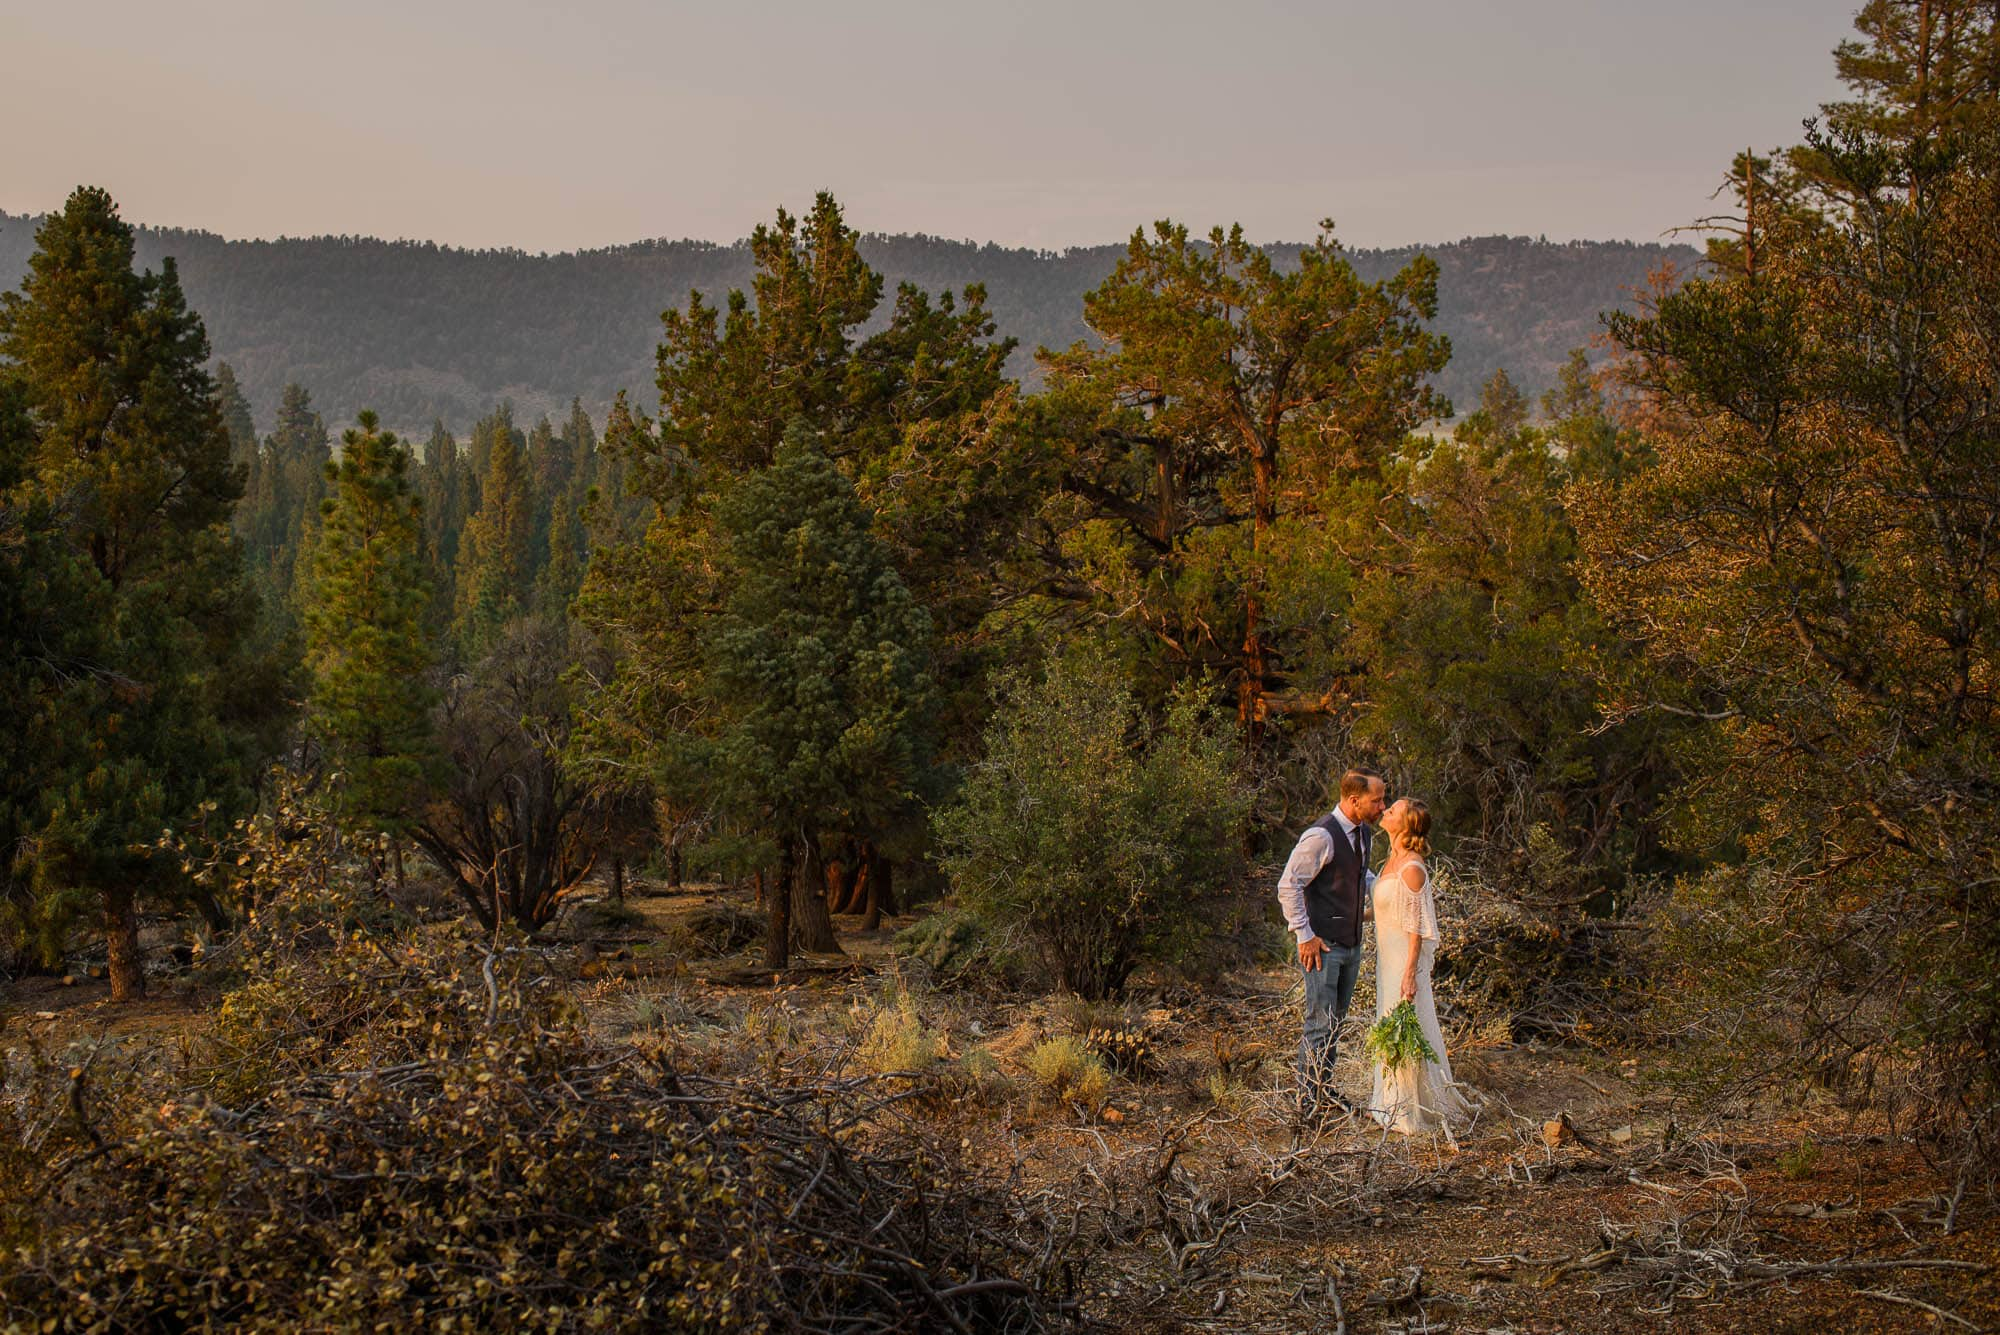 036_Alan_and_Heidi_Big_Bear_Elopement_Holly_Sean